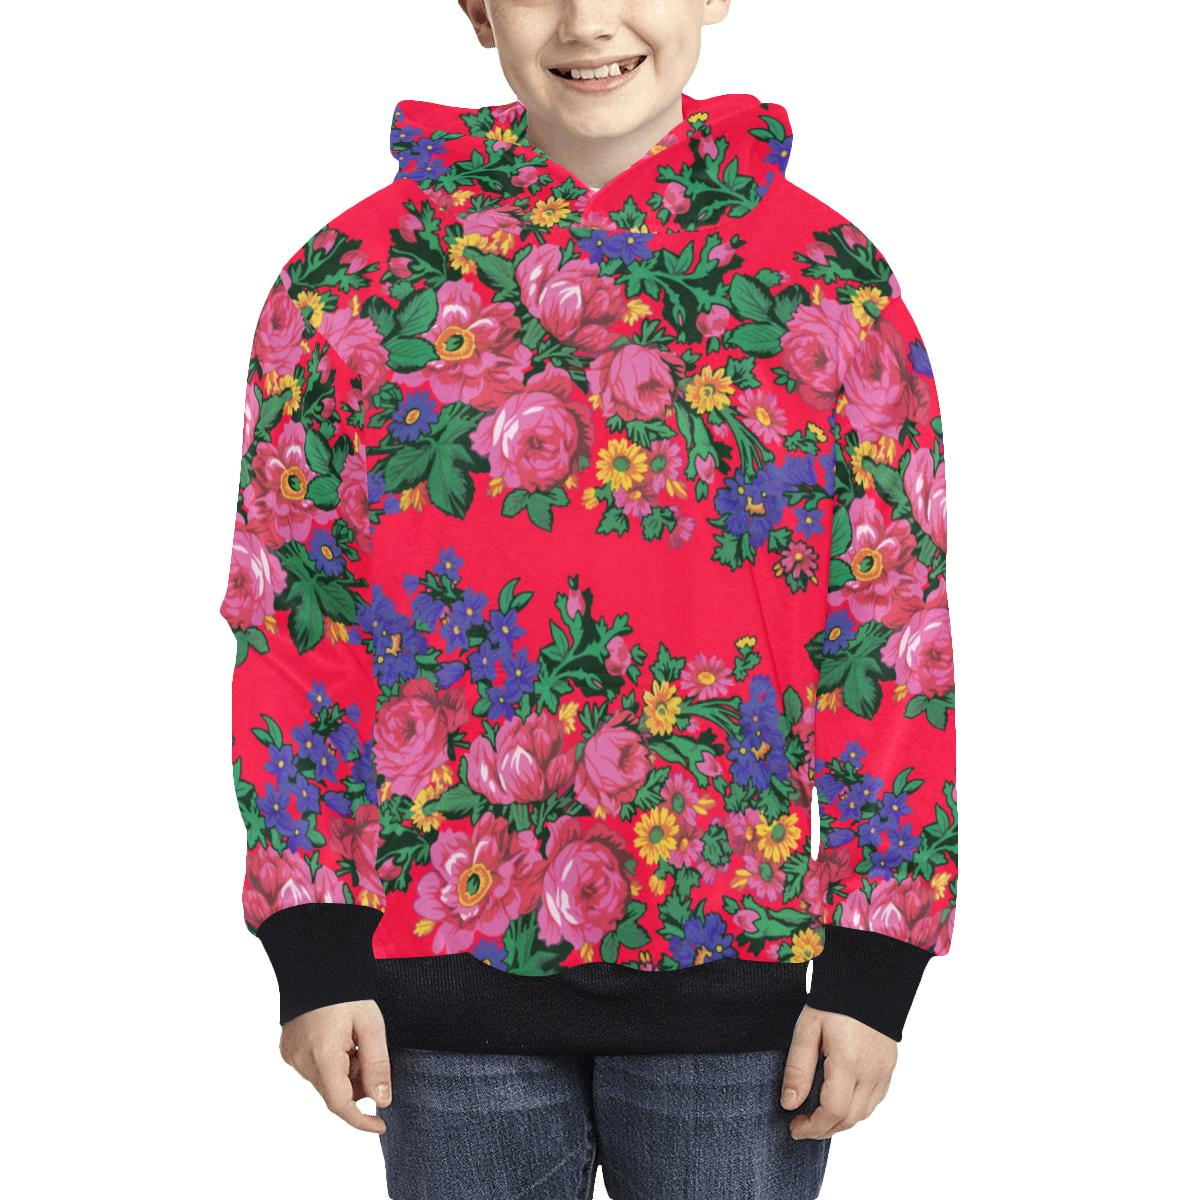 Kokum's Revenge Dahlia Kids' All Over Print Hoodie (Model H38) Kids' AOP Hoodie (H38) e-joyer